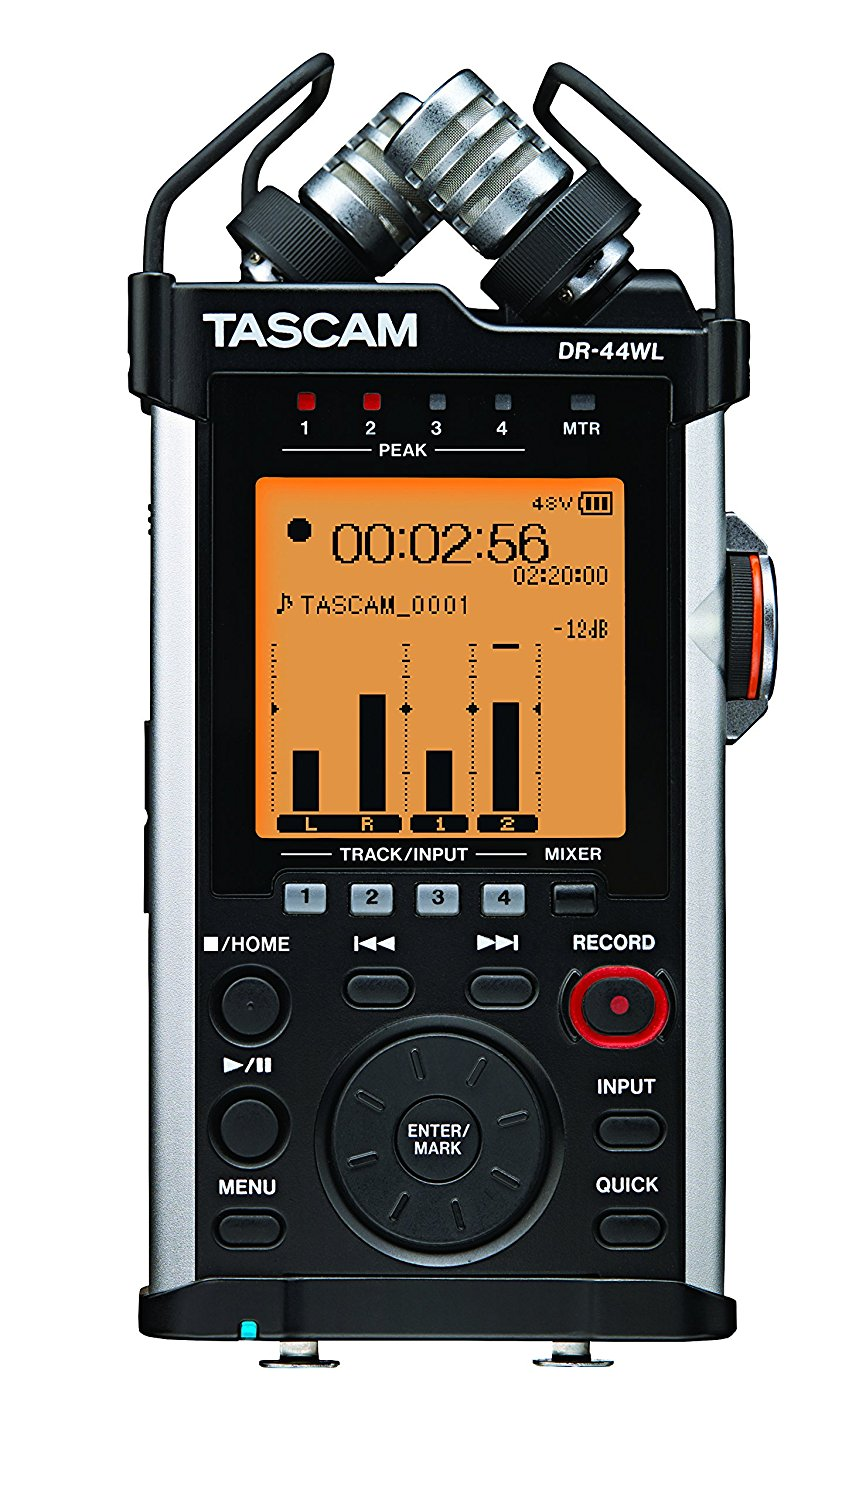 TASCAM Portable Handheld Recorder with XLR and Wi-Fi, 4 Channels, 4 AA Batteries, 2.5W Power Consumption, Black (DR-44WL)